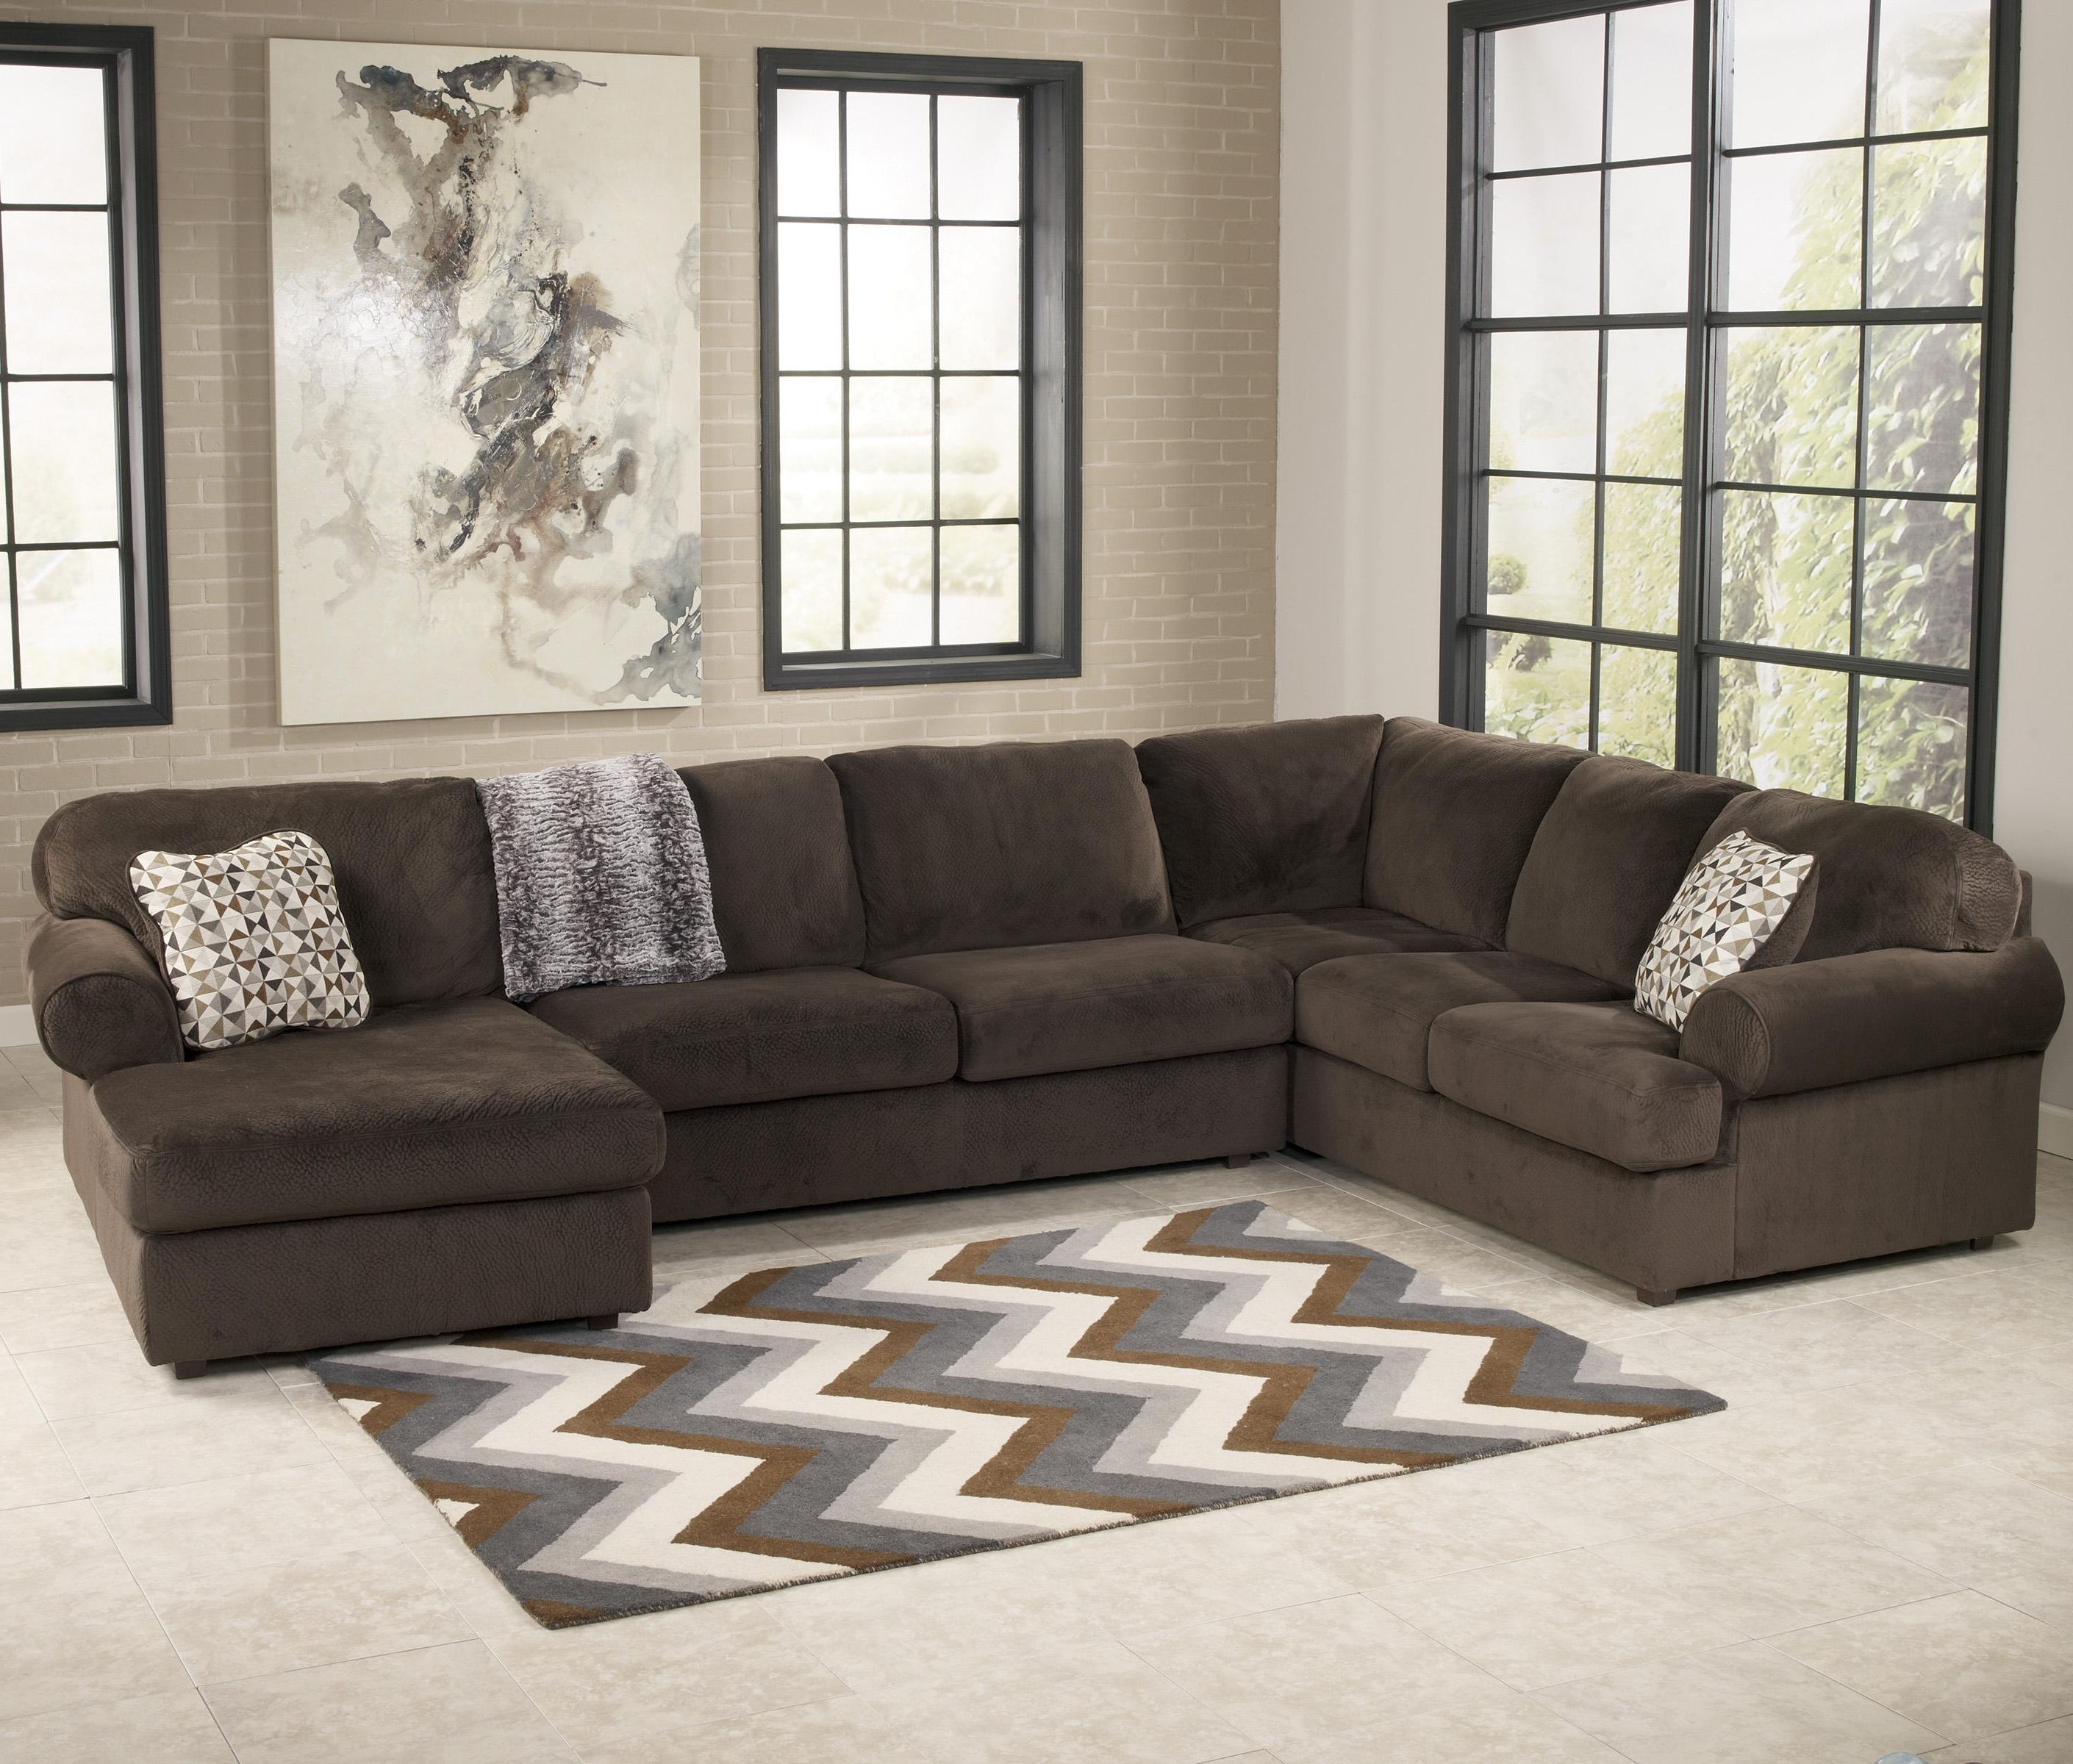 2018 Sectional Sofas At Ashley Furniture Regarding Sofa : Ashley Jessa Place Sectional Sofa Ashley Sectional Sofa (View 1 of 20)